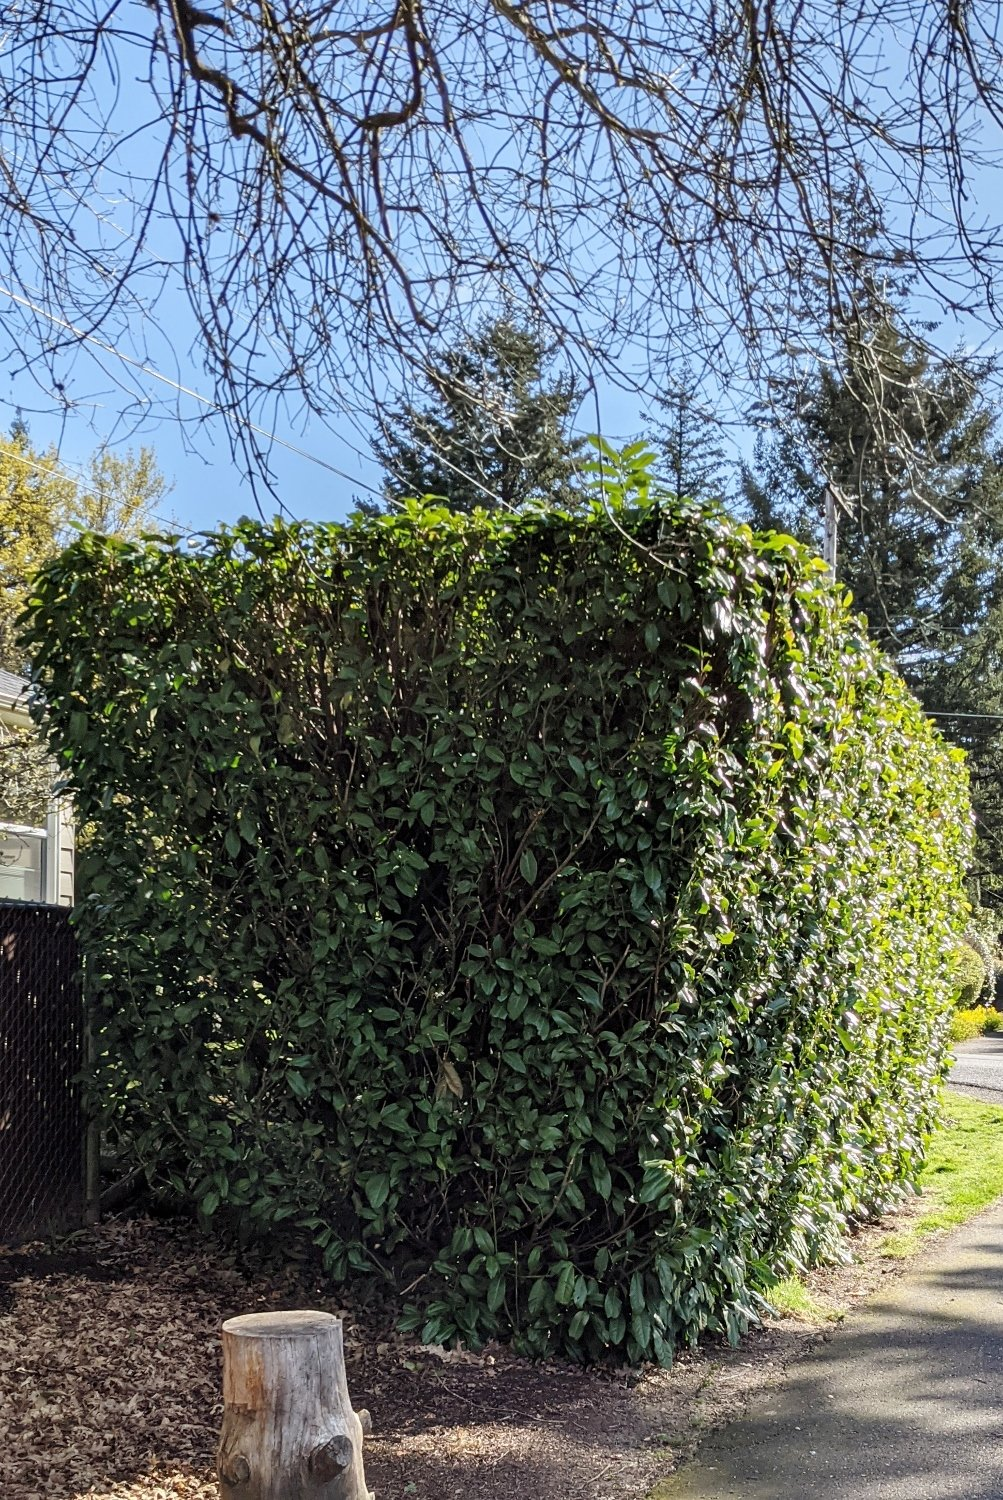 Dense laurel privacy hedge